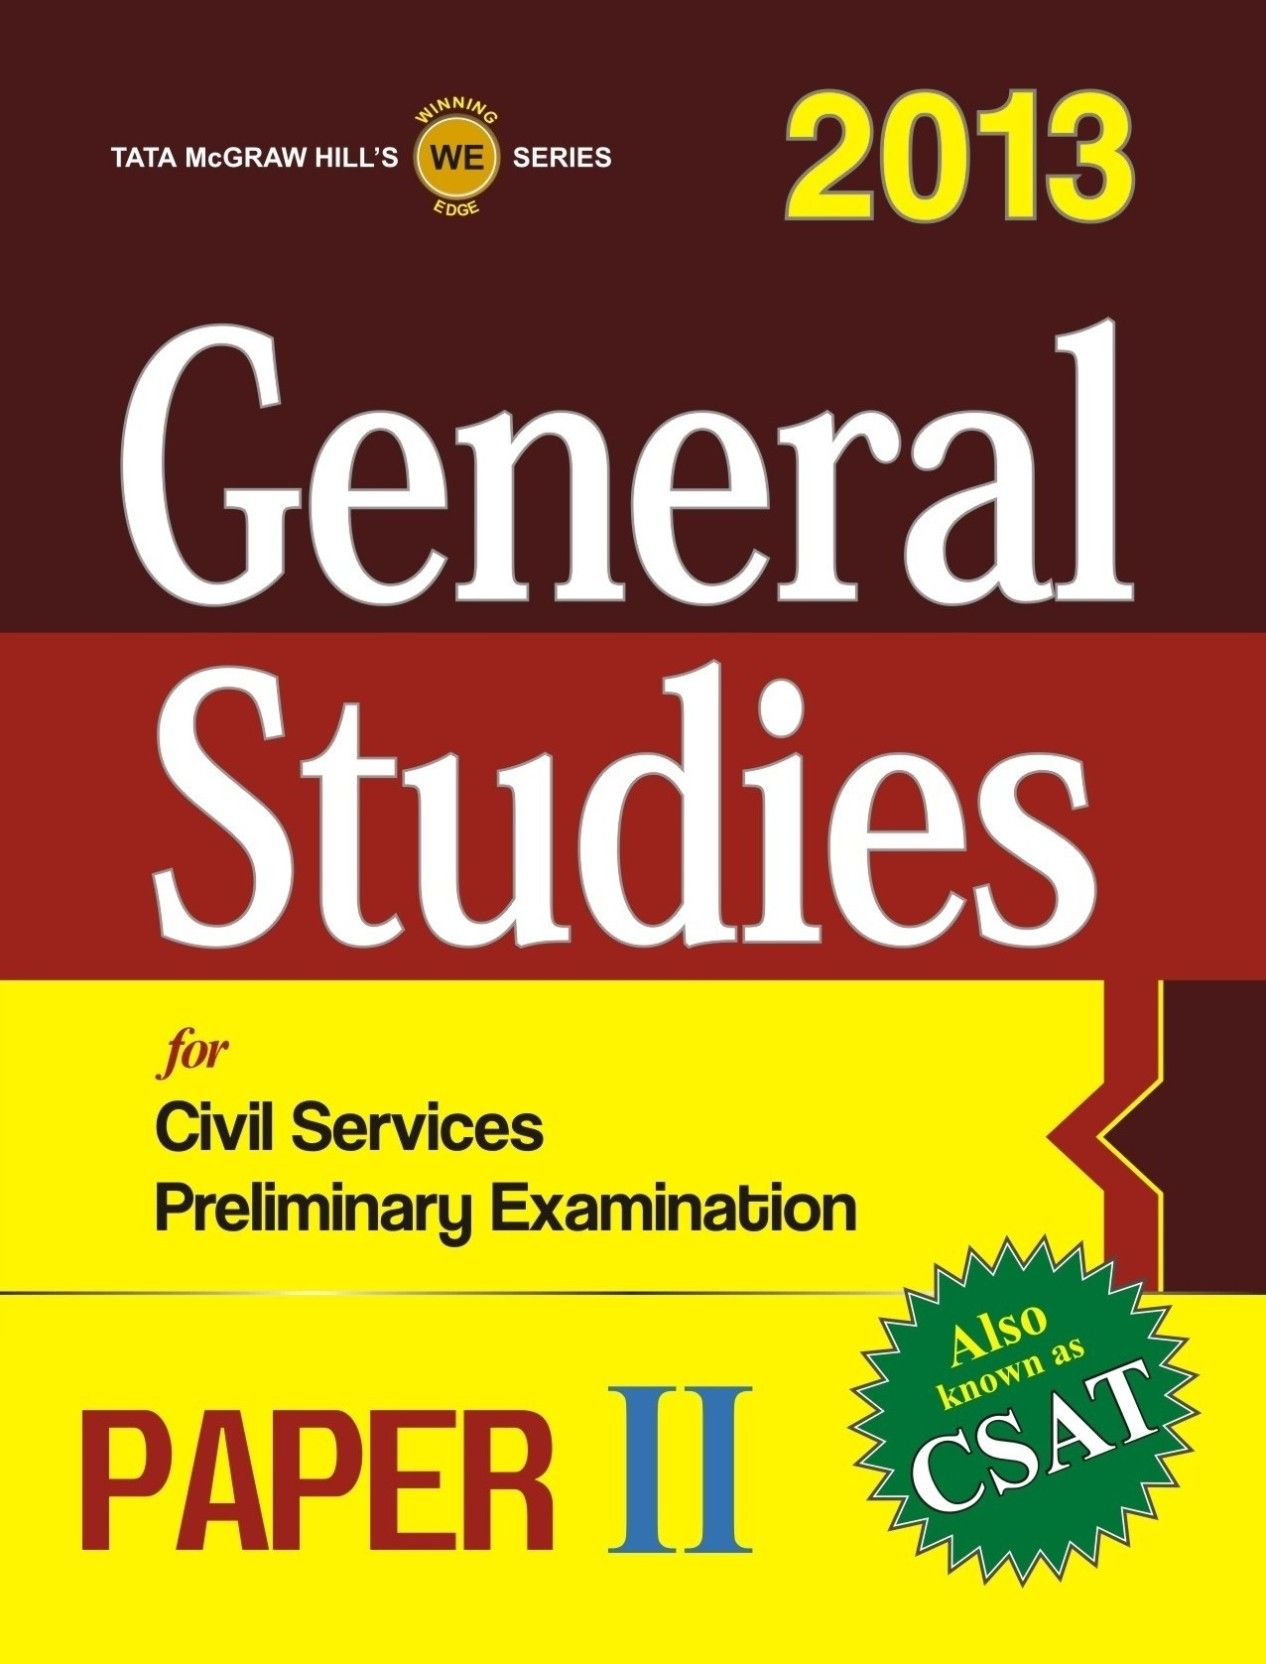 general studies 2013 General studies for civil services preliminary examination 2013 (paper - 1) 1st edition paperback books- buy general studies for civil services preliminary examination 2013 (paper - 1) 1st edition books online at lowest price with rating & reviews , free shipping, cod - infibeamcom.